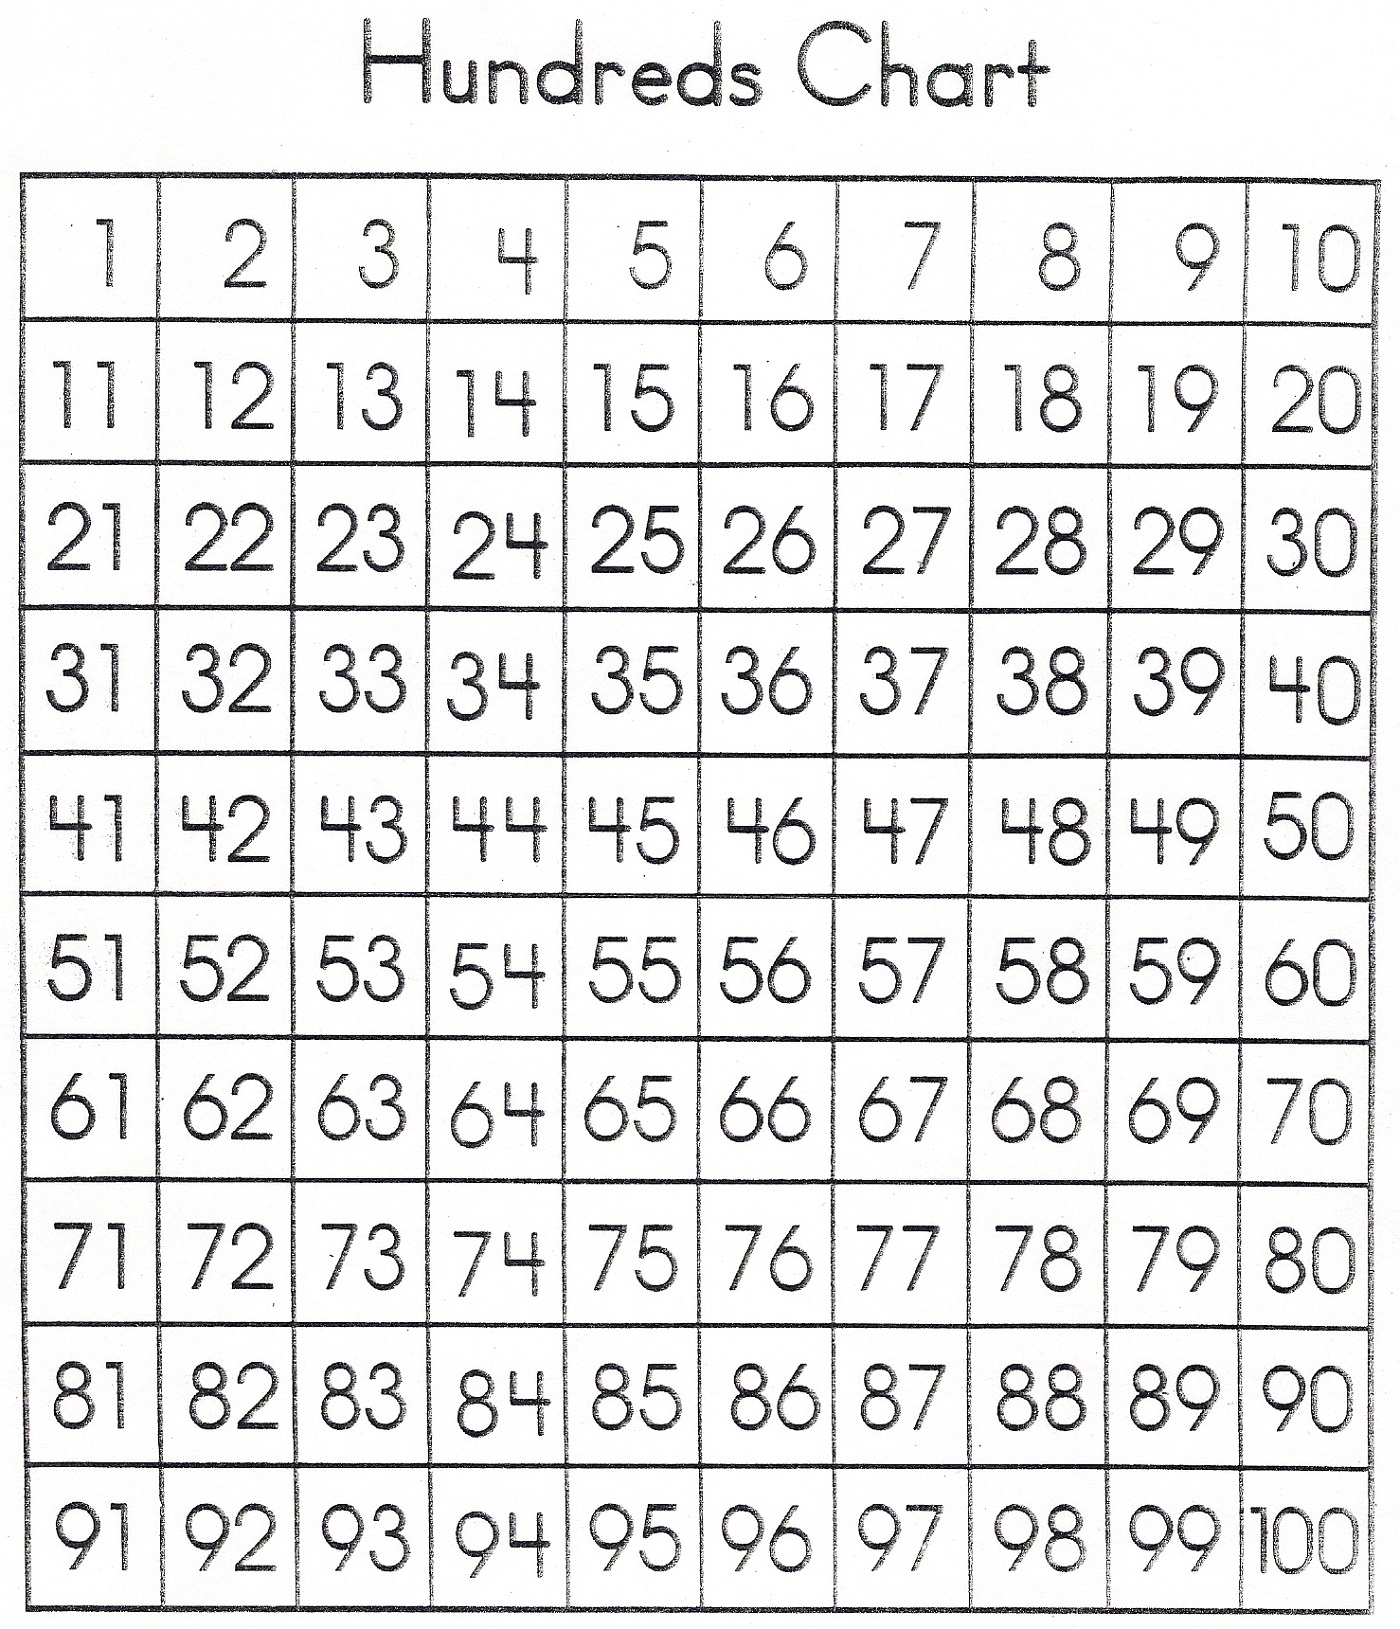 1-100-number-chart-simple